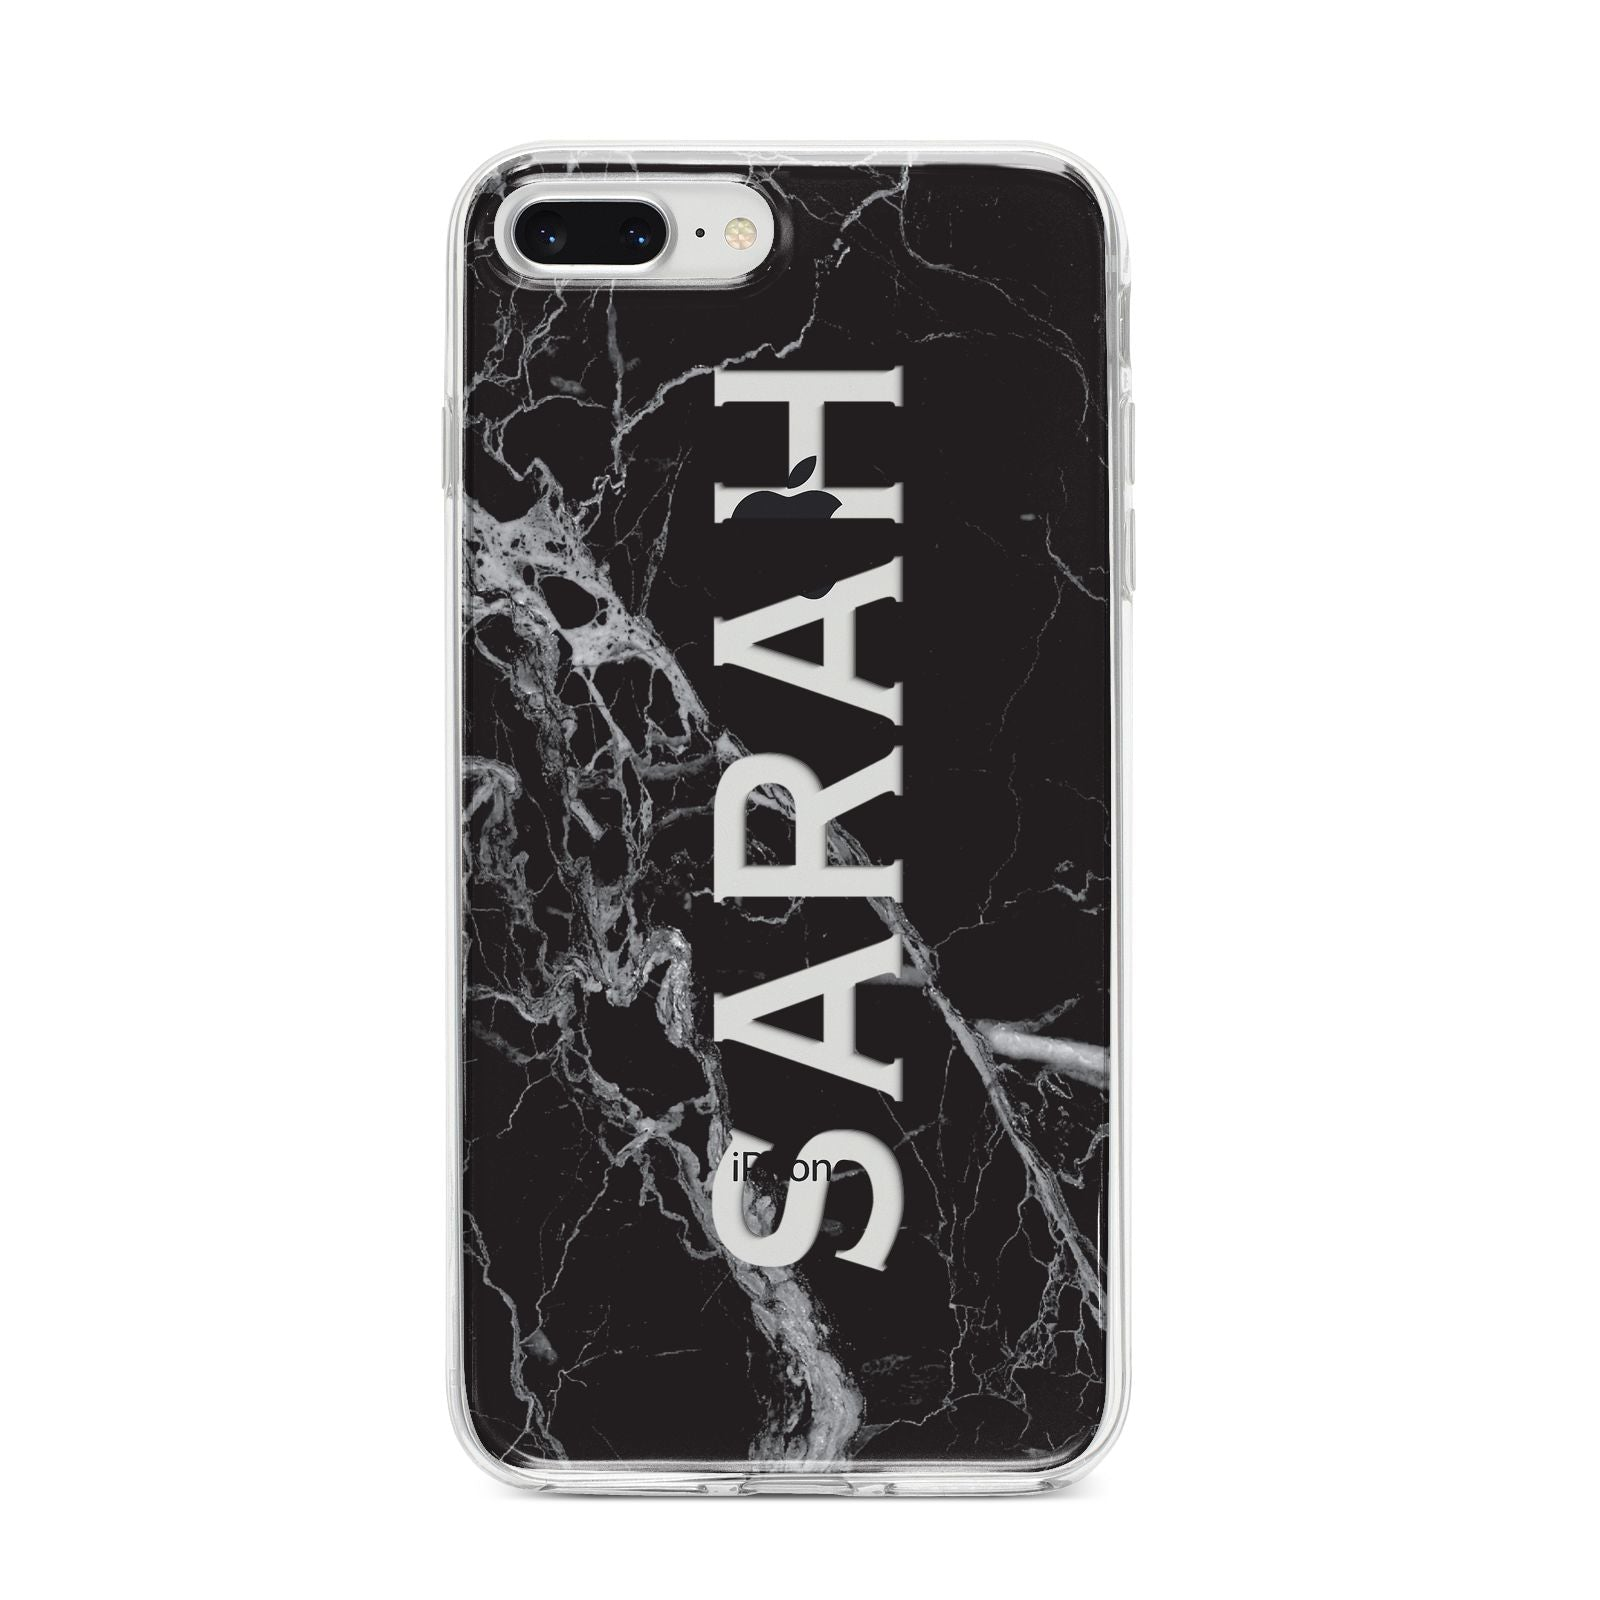 Personalised Clear Name Cutout Black Marble Custom iPhone 8 Plus Bumper Case on Silver iPhone